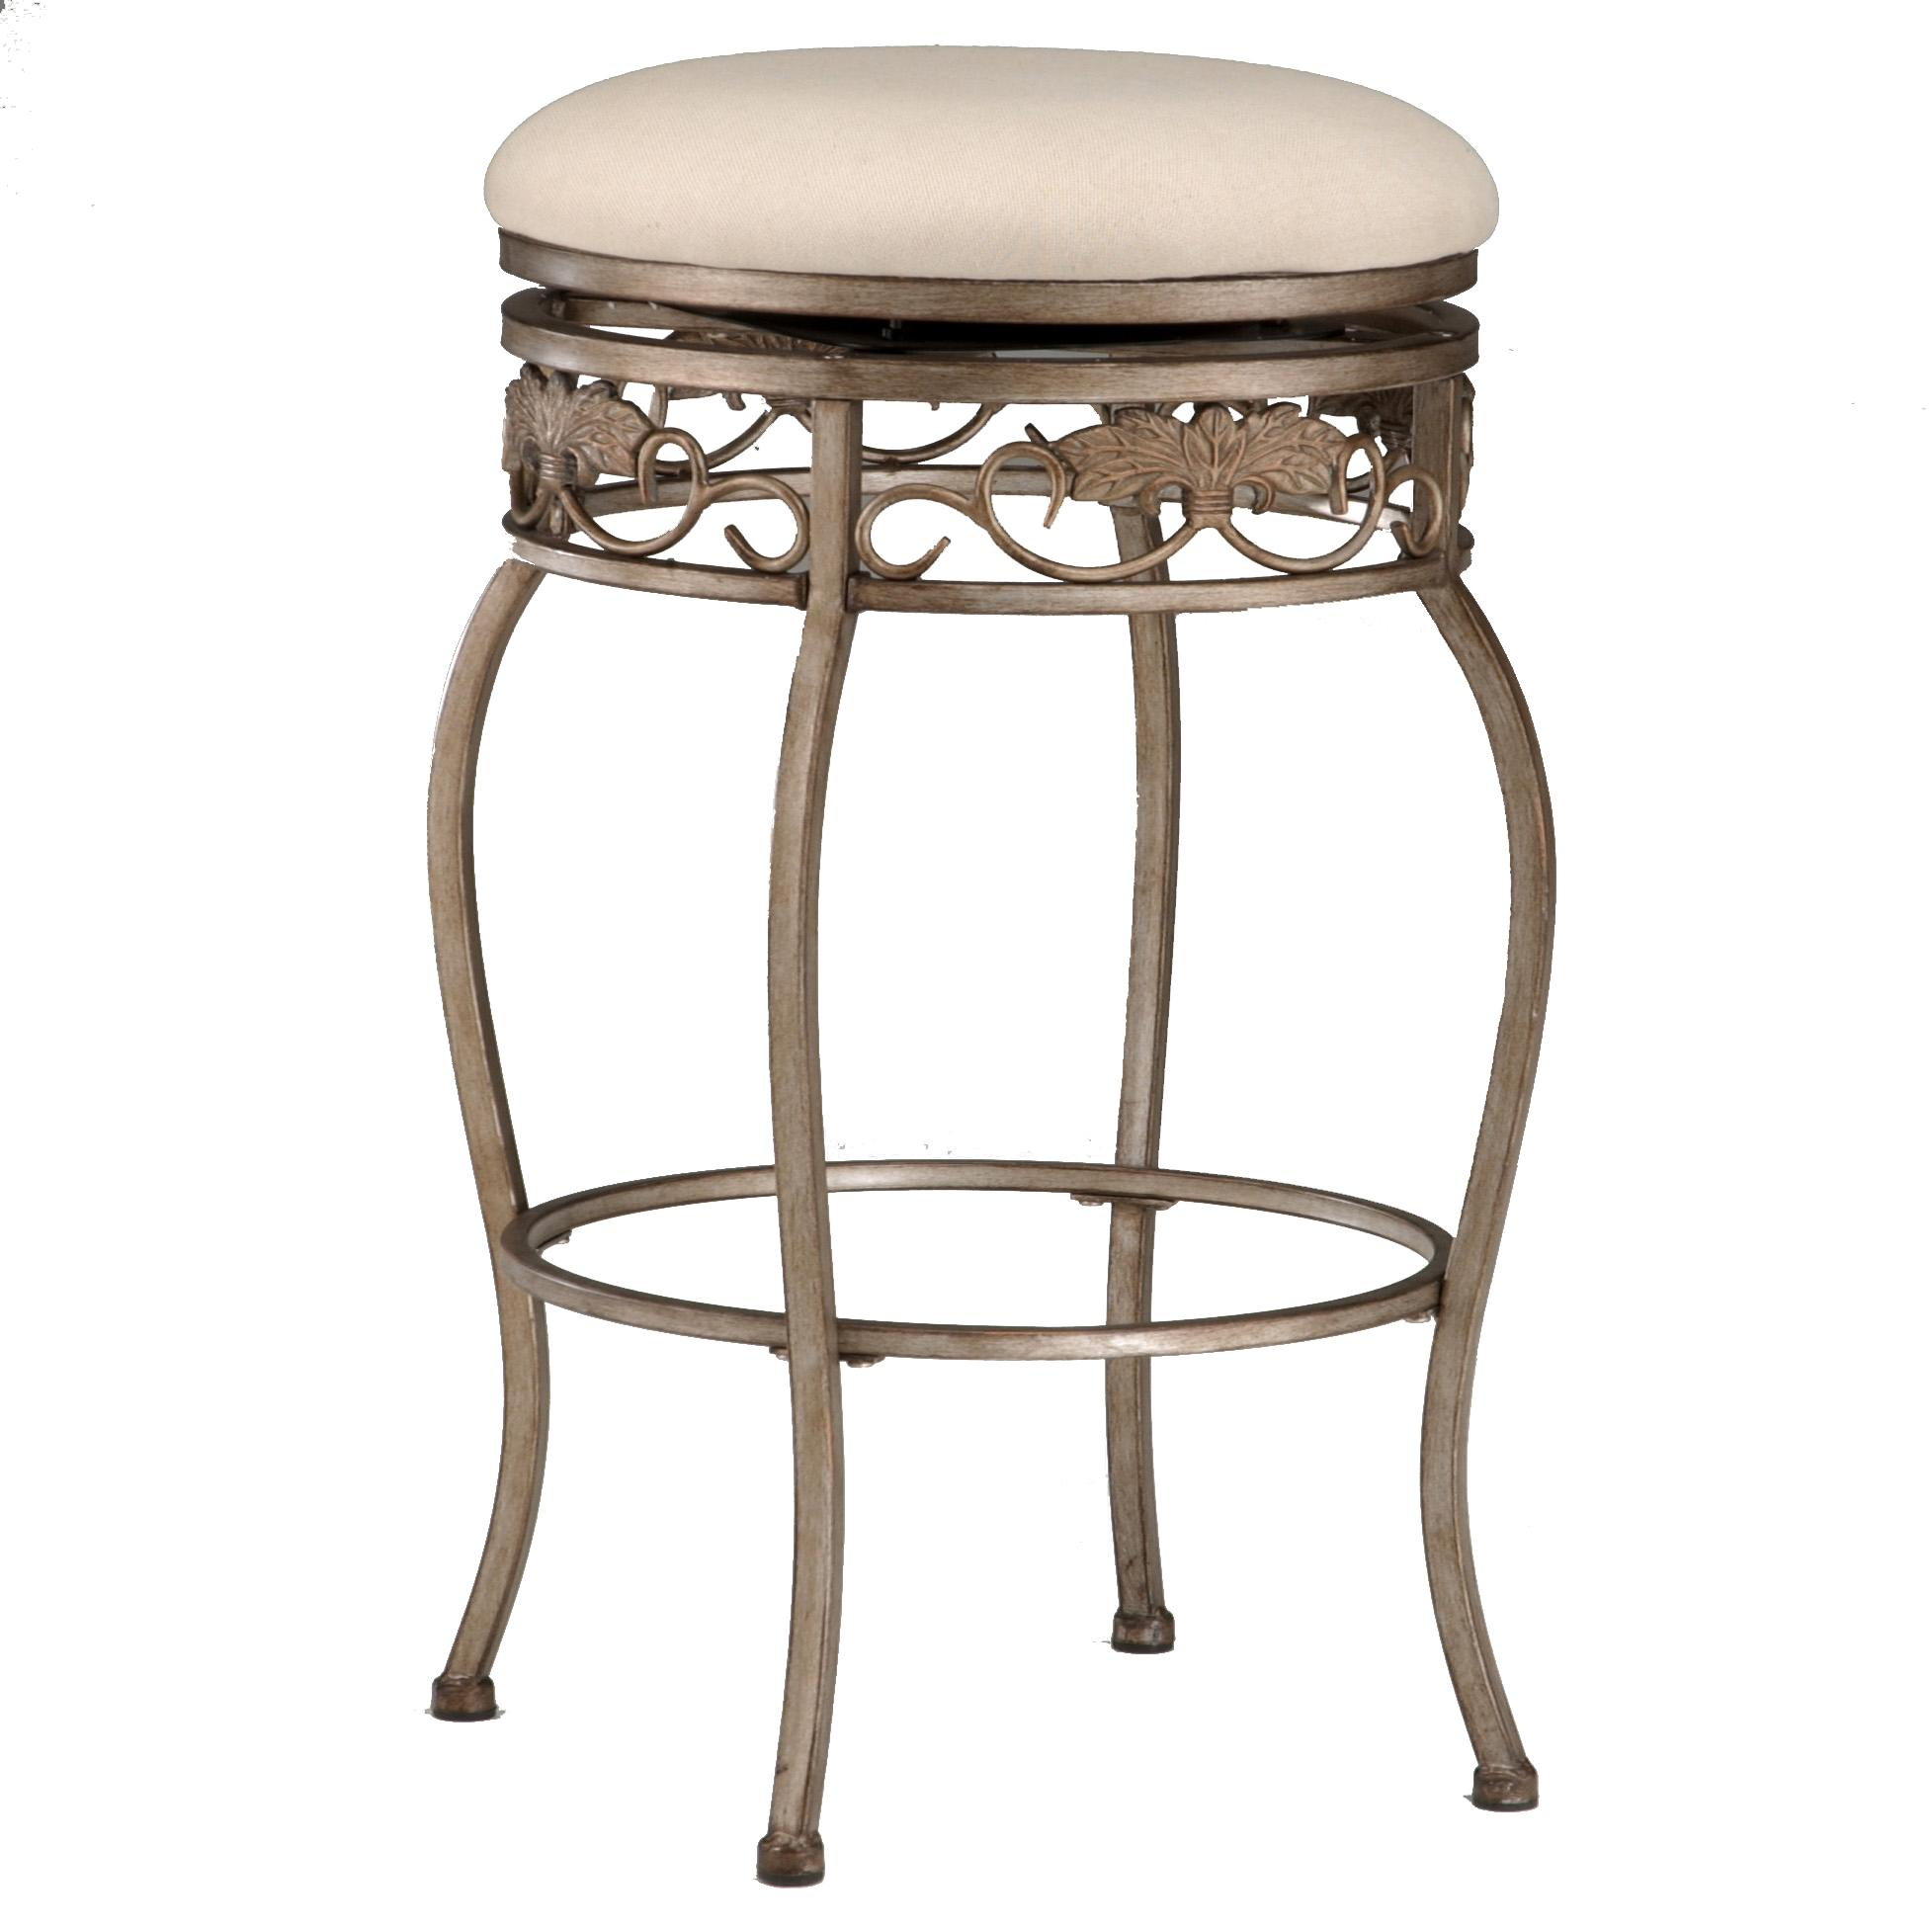 "Hillsdale Backless Bar Stools 26"" Backless Bordeaux Swivel Counter Stool - Item Number: 4358-827"